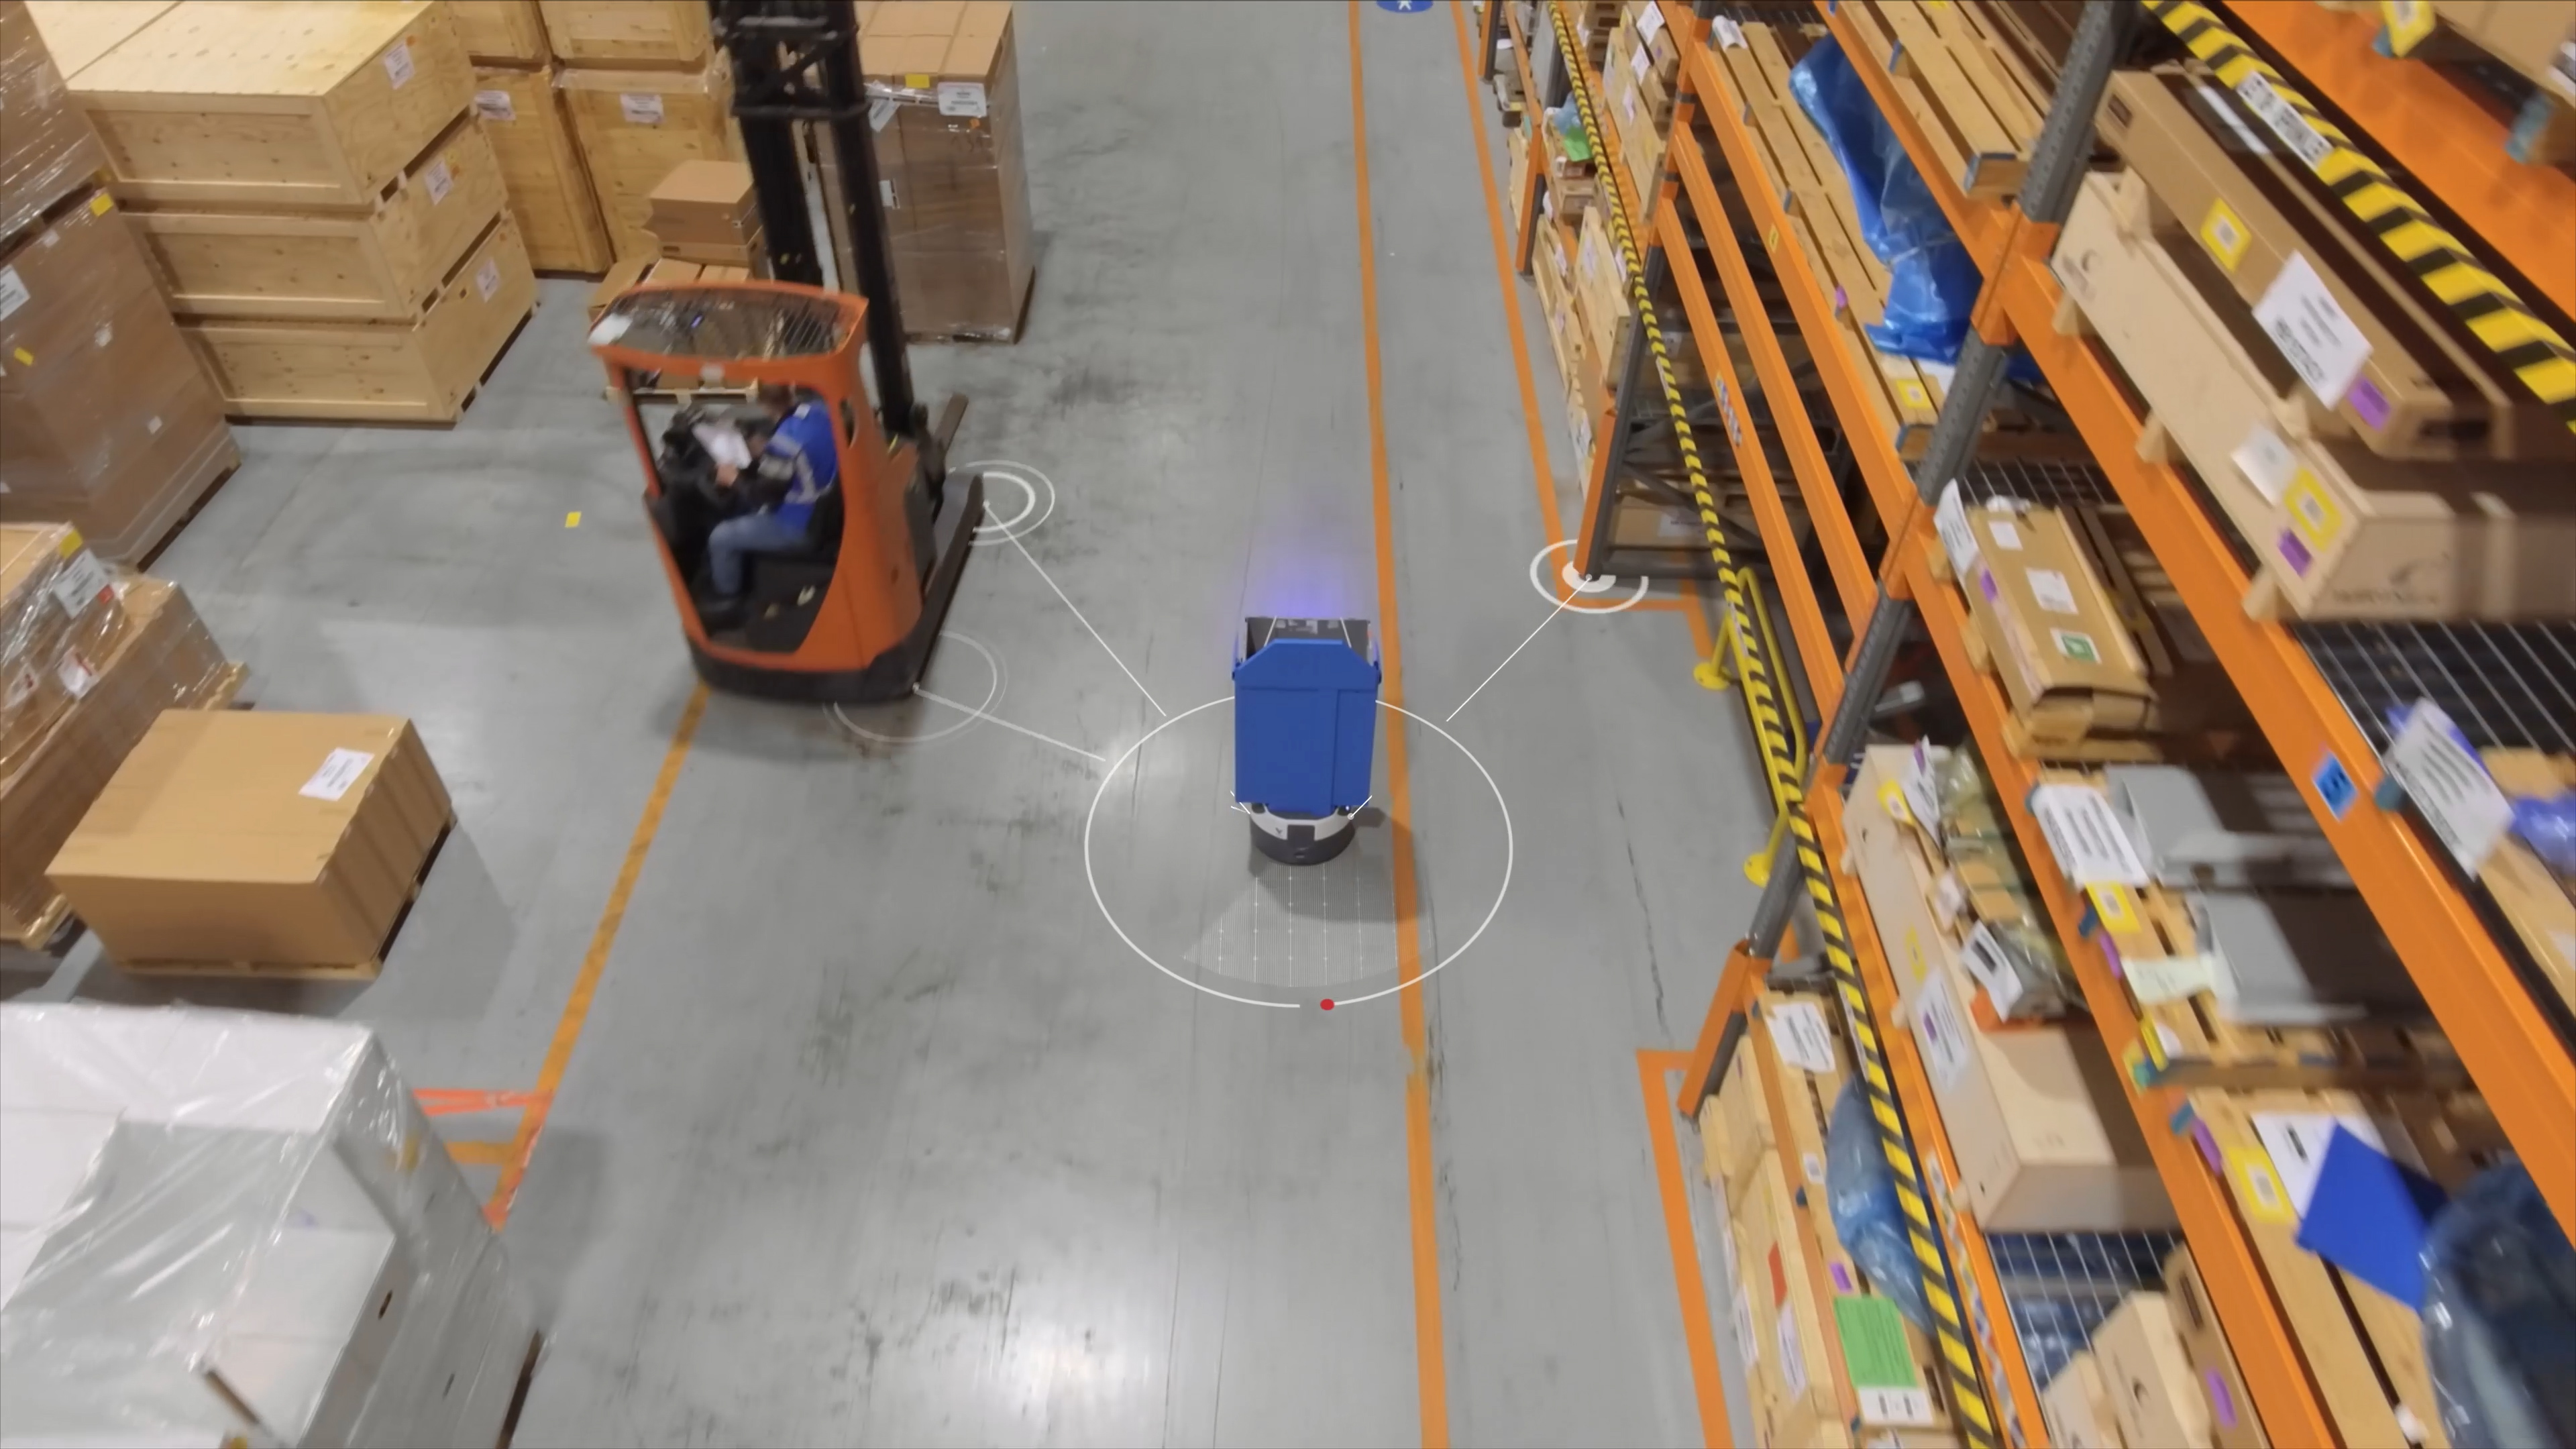 Wärtsilä and DHL deploy cutting-edge mobile robots from